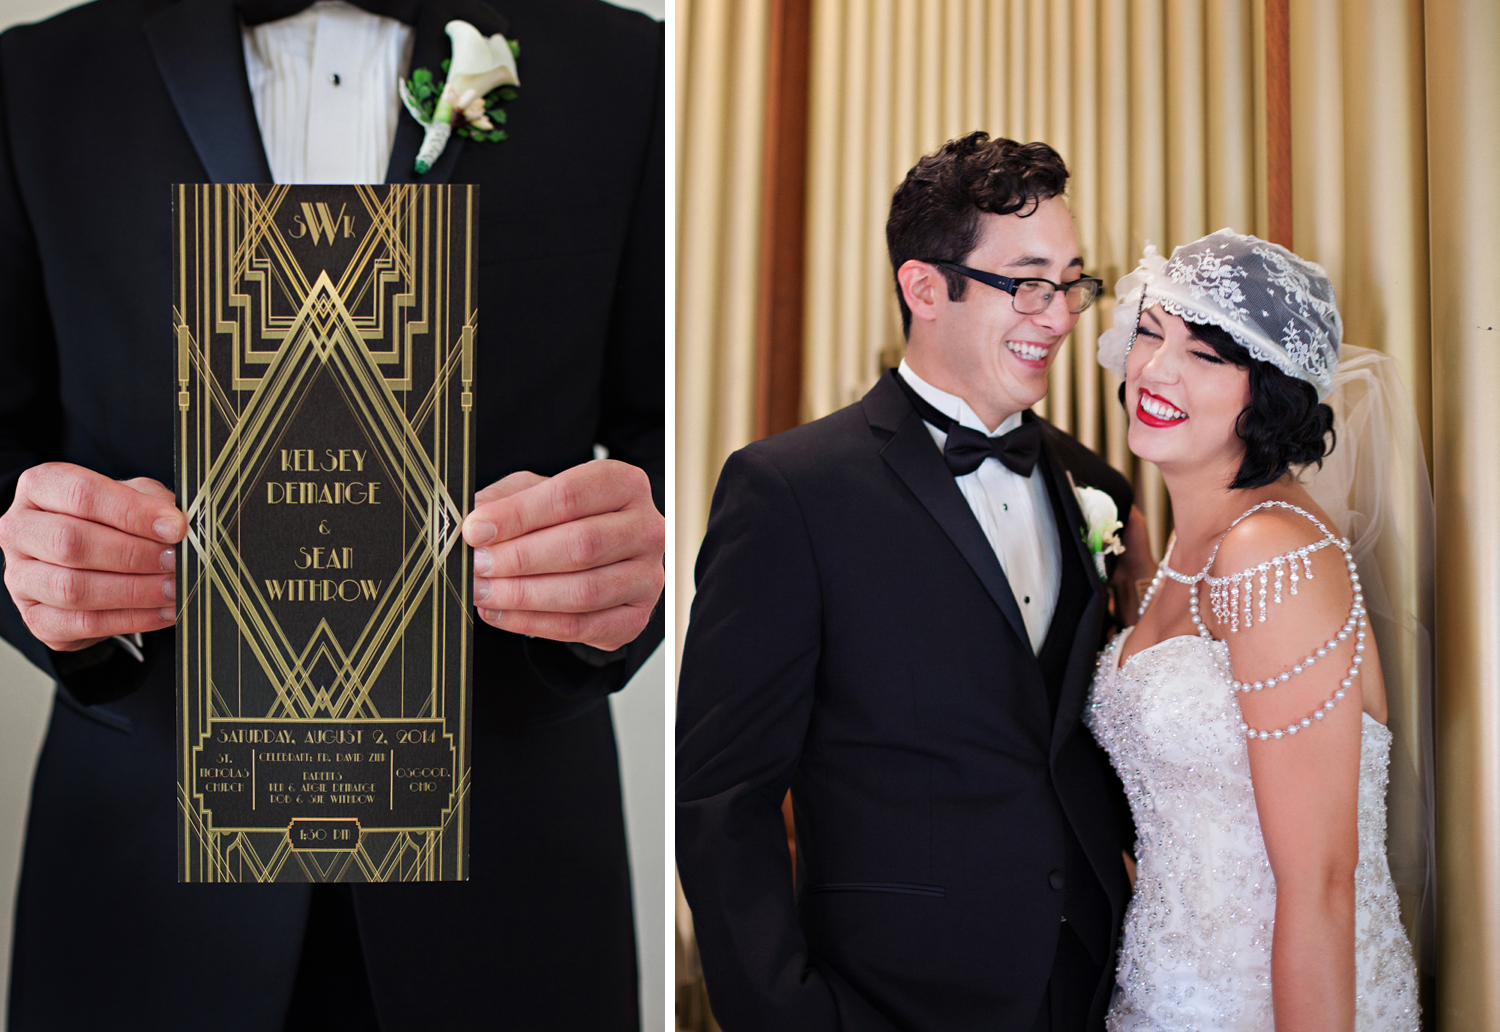 Osgood Ohio, 1920 inspired wedding, Great Gatsby wedding, emotional wedding image, wedding details,